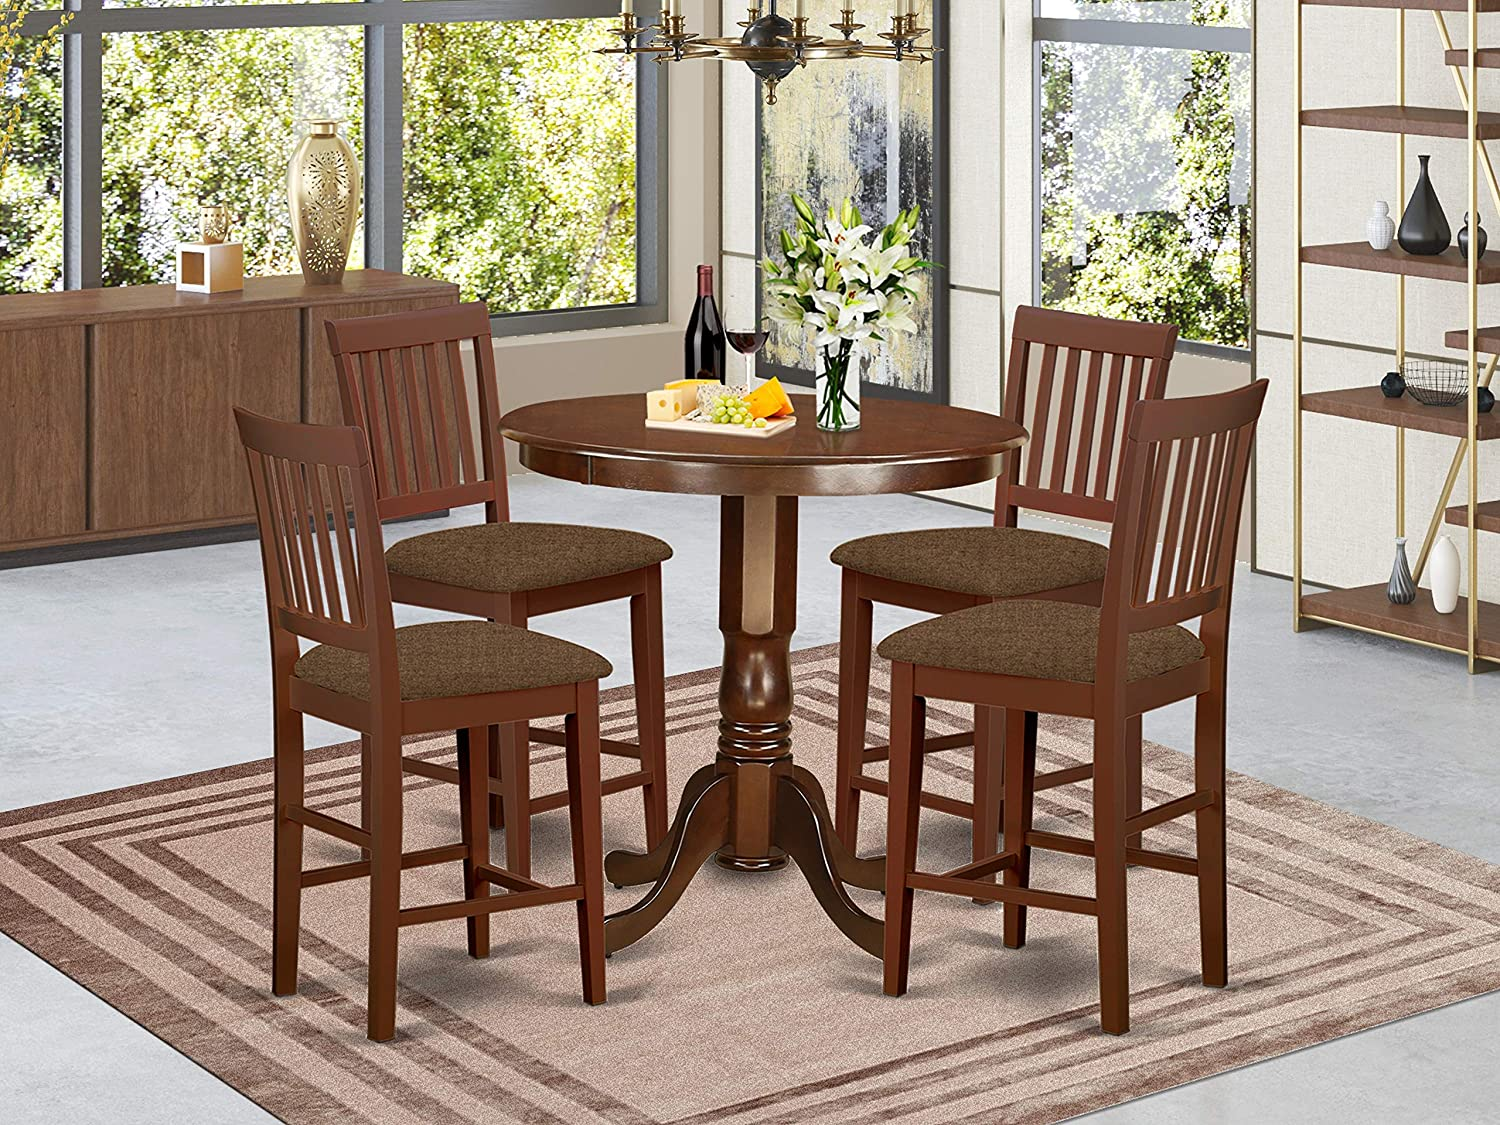 East West Furniture Javn5 Mah C 5 Piece Dining Table Set Round Top Wooden Table 4 Dining Chairs Slatted Back And Linen Fabric Seat Mahogany Finish Furniture Decor Amazon Com